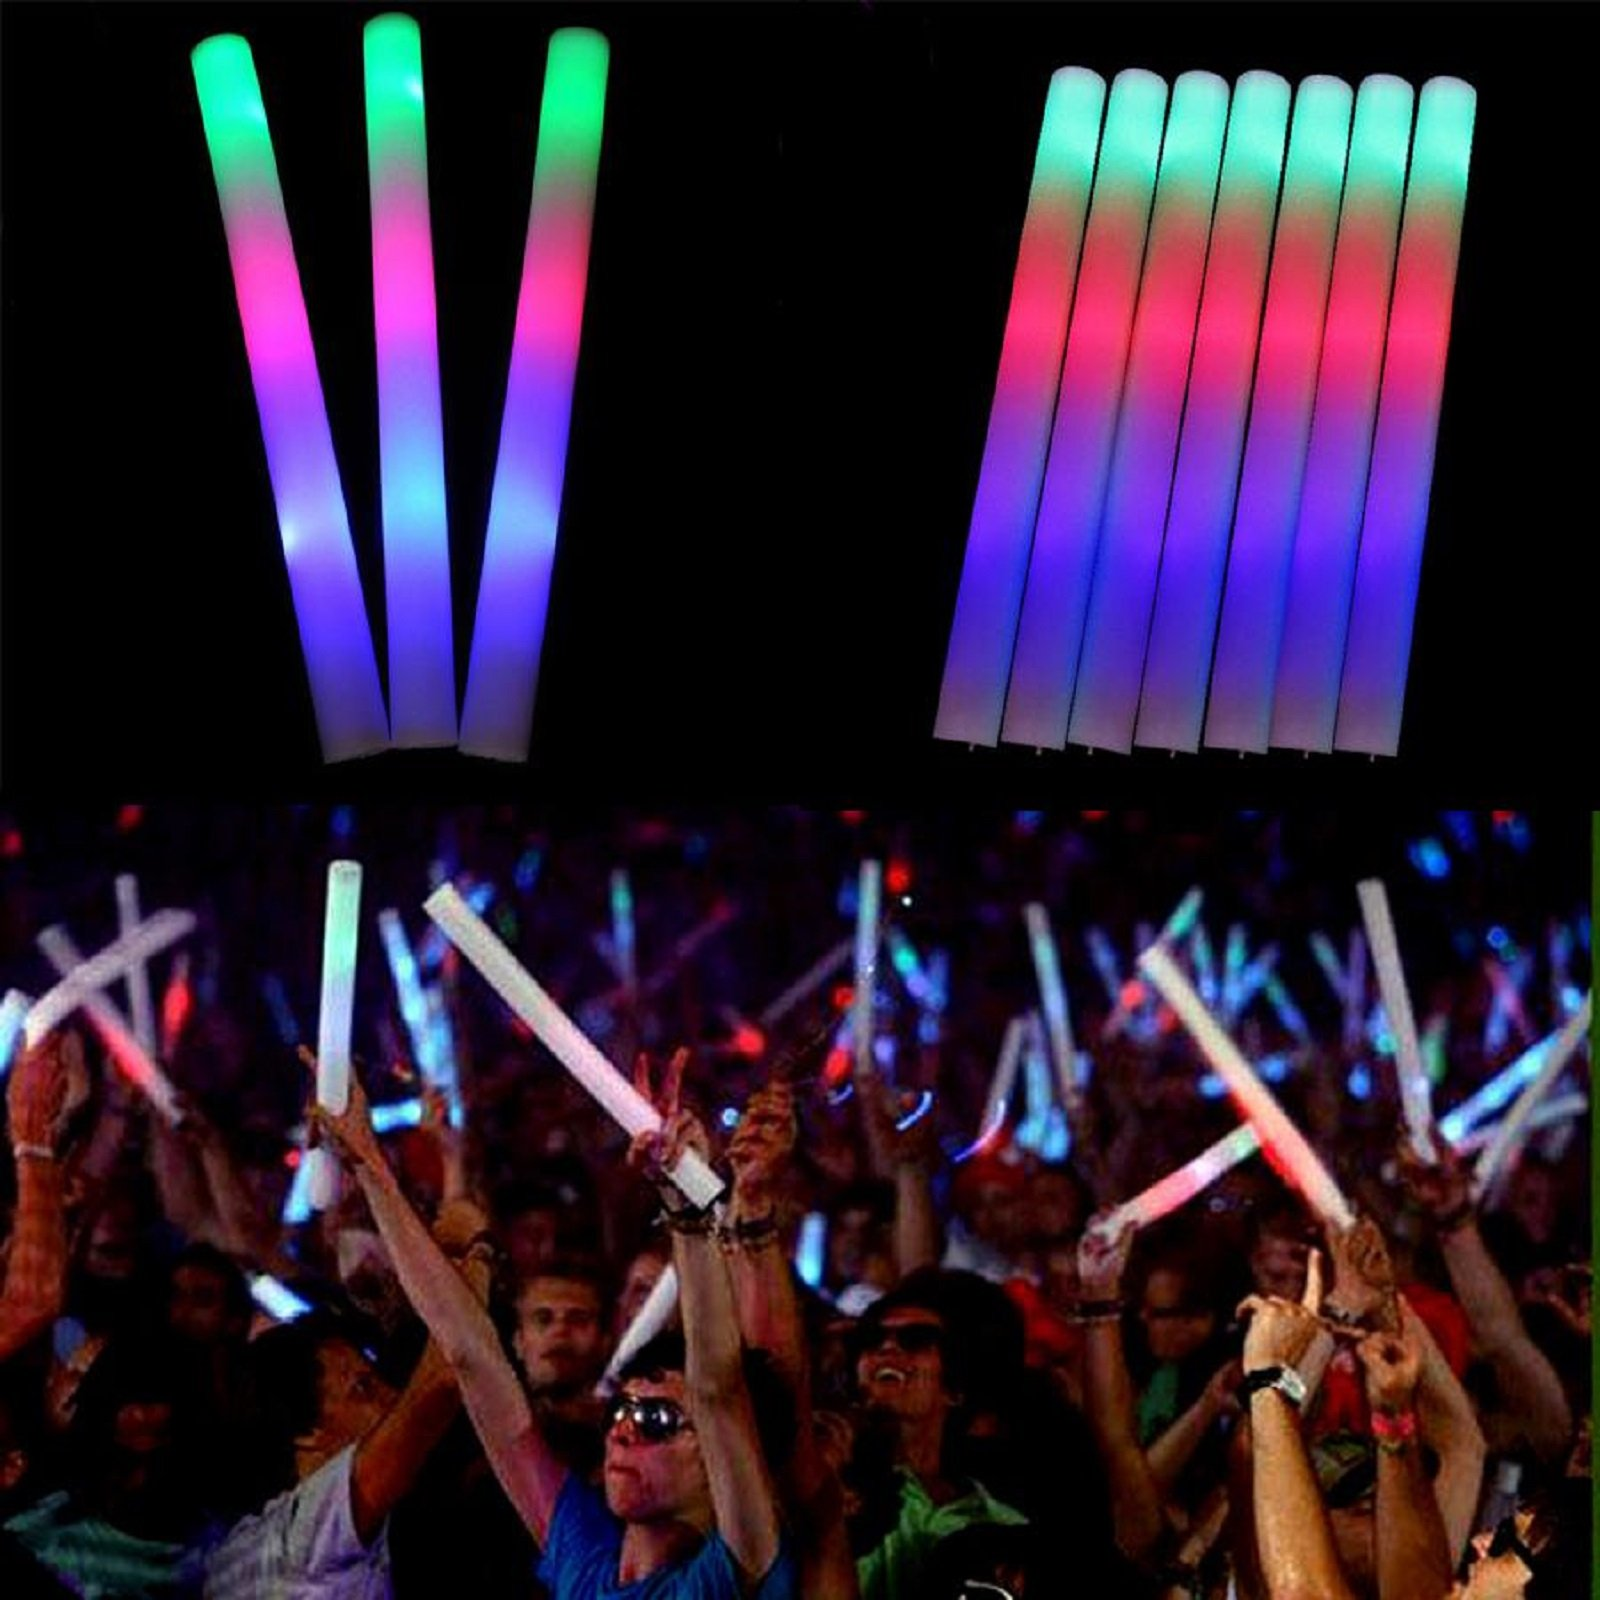 100 Pack of 18 Inch Multi Color Flashing Glow LED Foam Sticks, Wands, Batons - 3 Modes Multi-Color - Party Flashing Light DJ Wands, Concert, Festivals, Birthdays, Party Supplies, Weddings, Give Aways by JY Premium (Image #1)